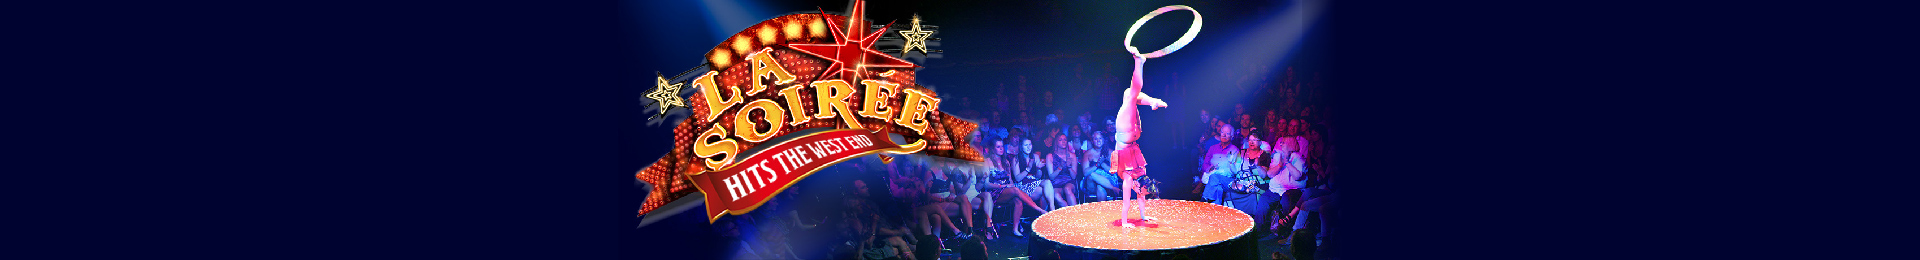 VIDEO: LA SOIREE AT SOUTH BANK BIG TOP - EXCLUSIVE TRAILER